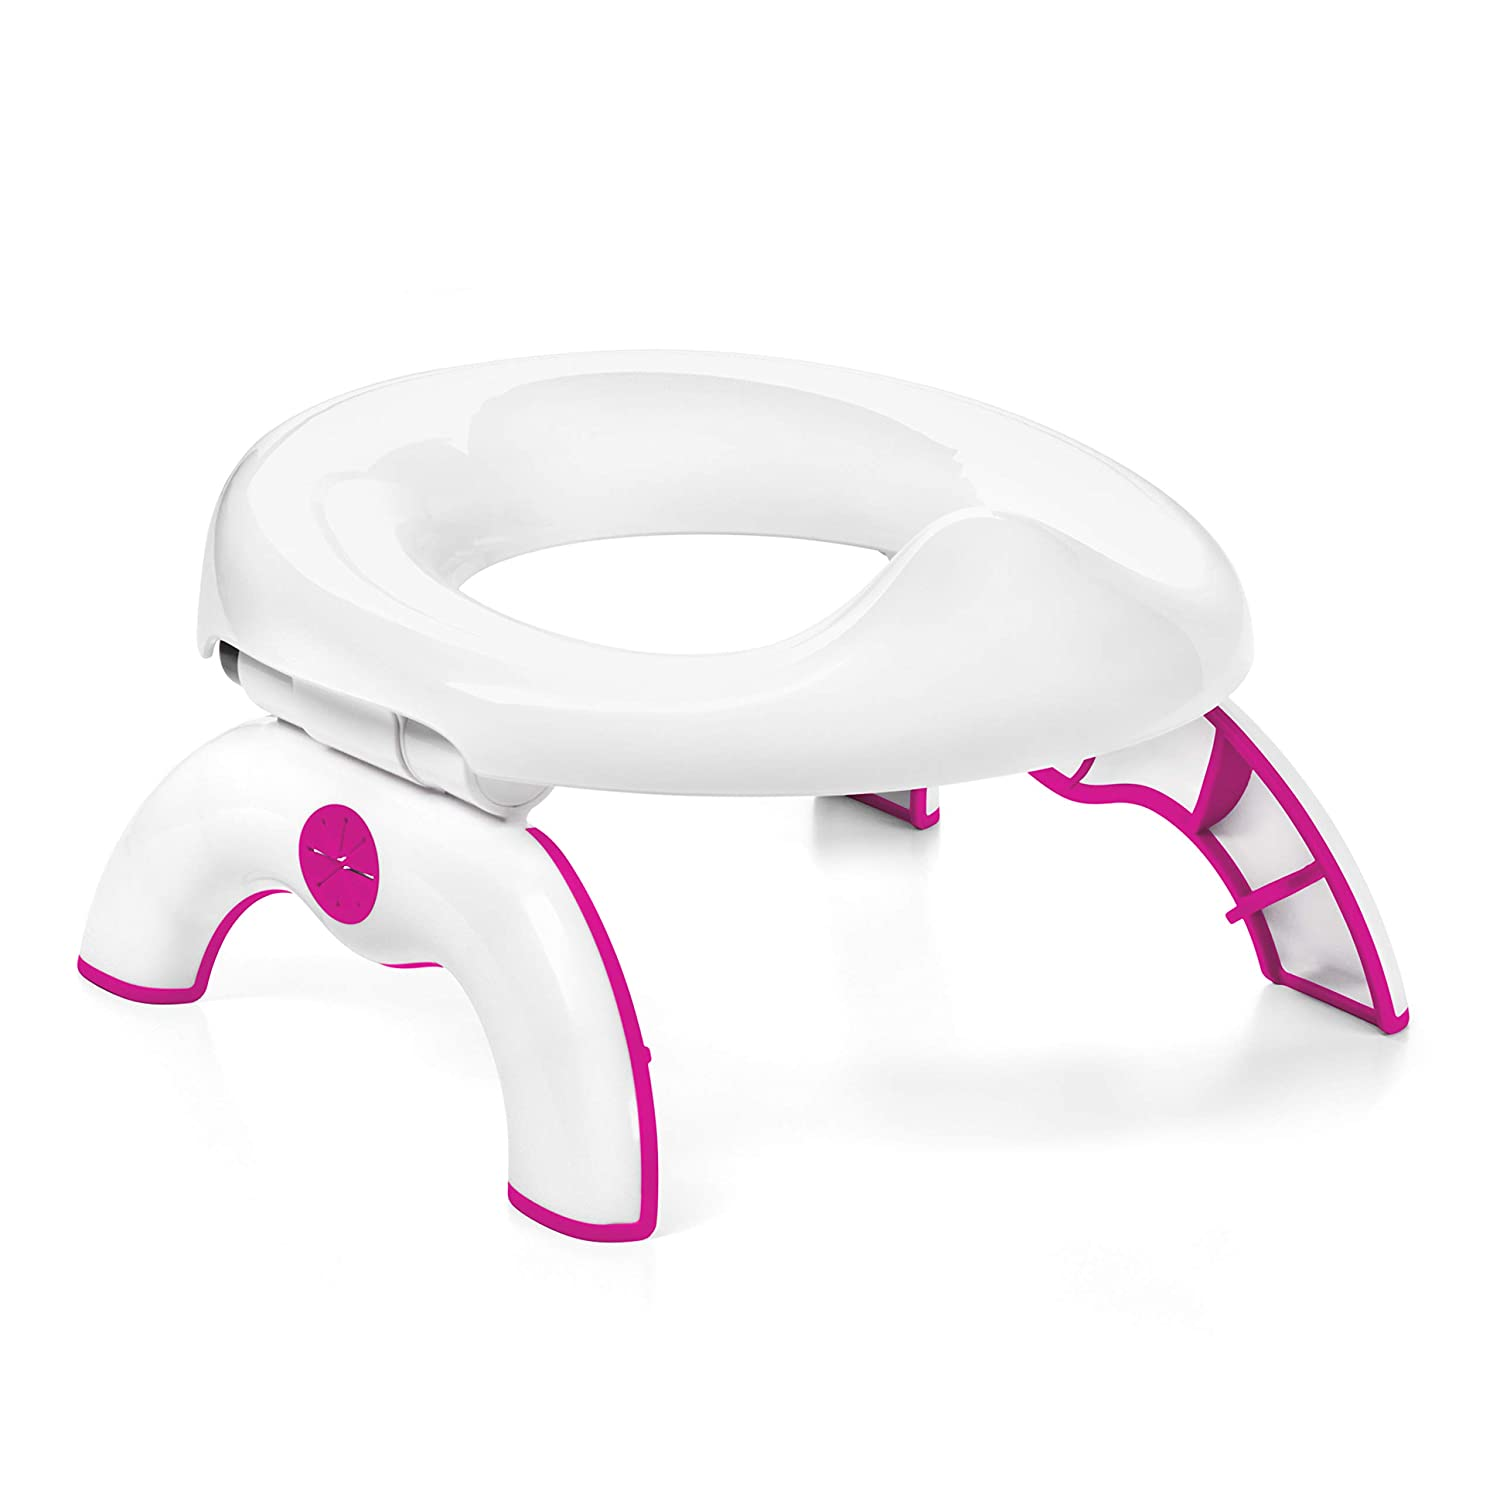 B00NFJICN0 OXO Tot 2-in-1 Go Potty for Travel - Pink 71JqgJ2BSZcL